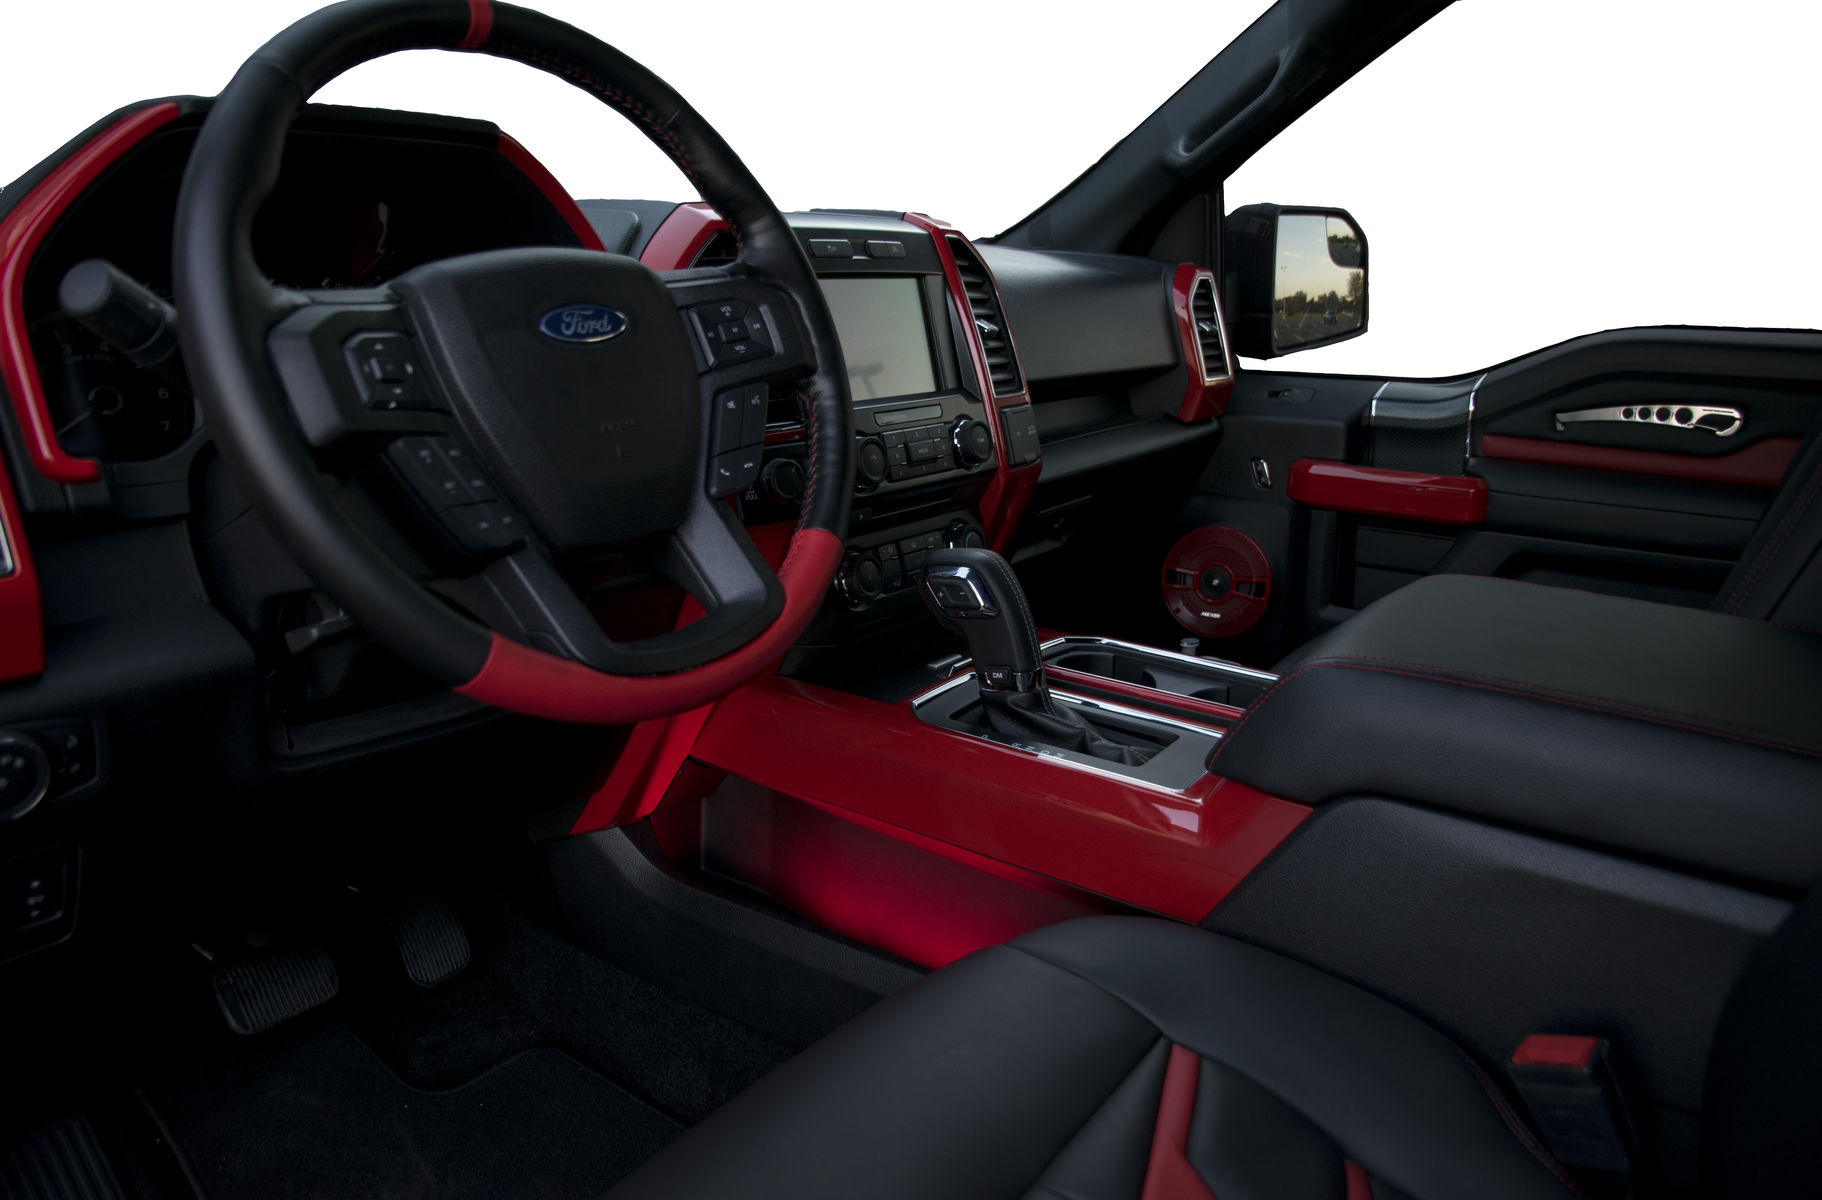 2018 Ford F 150 4x4 Xlt Supercrew By A R E Accessories Interior Shot Fordsema